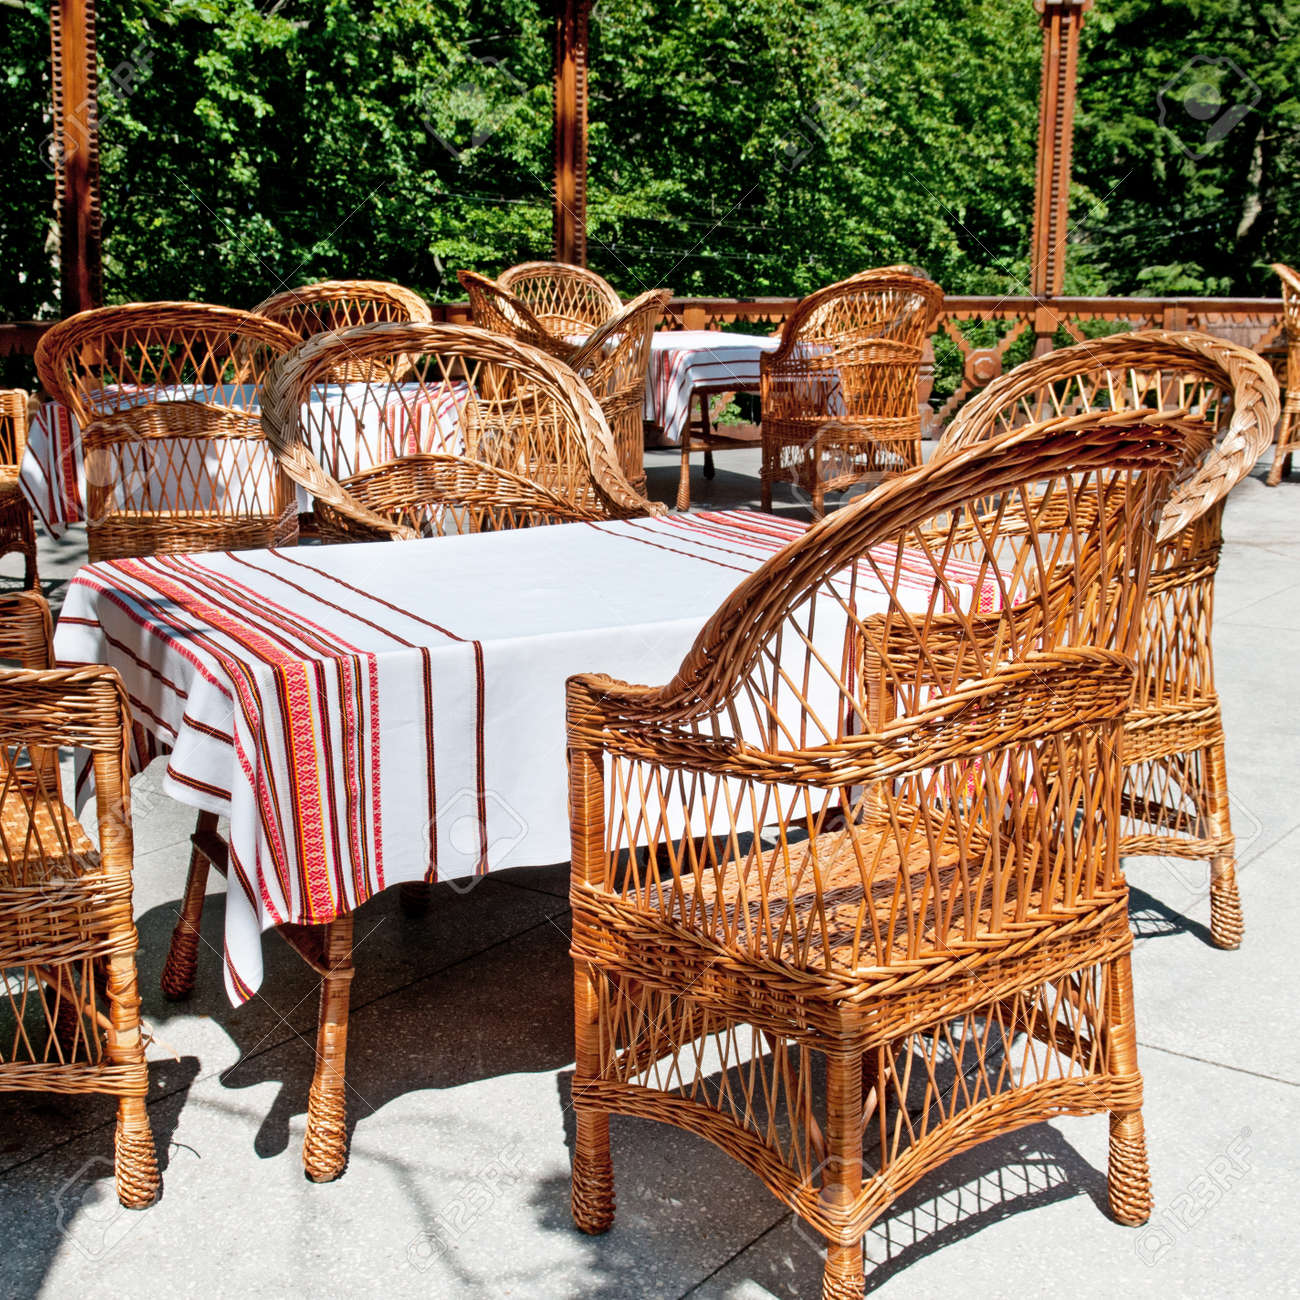 Furniture Made Of Willow Twigs On The Outdoor Terrace Restaurant Stock Photo Picture And Royalty Free Image Image 23711469